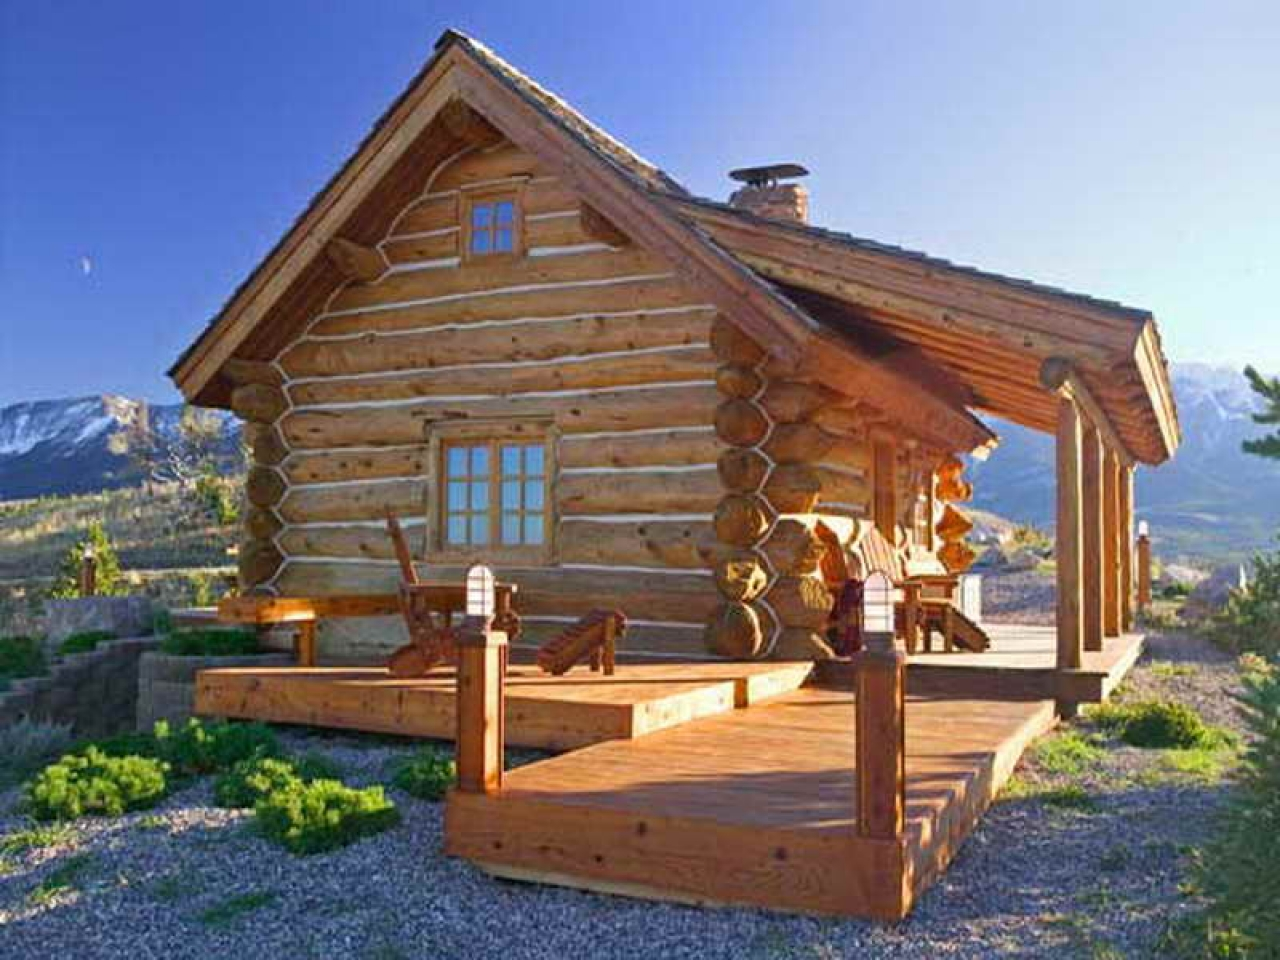 Tiny Victorian House Plans Small Cabins Tiny Houses Homes: Inside A Small Log Cabins Small Log Cabin Homes Plans